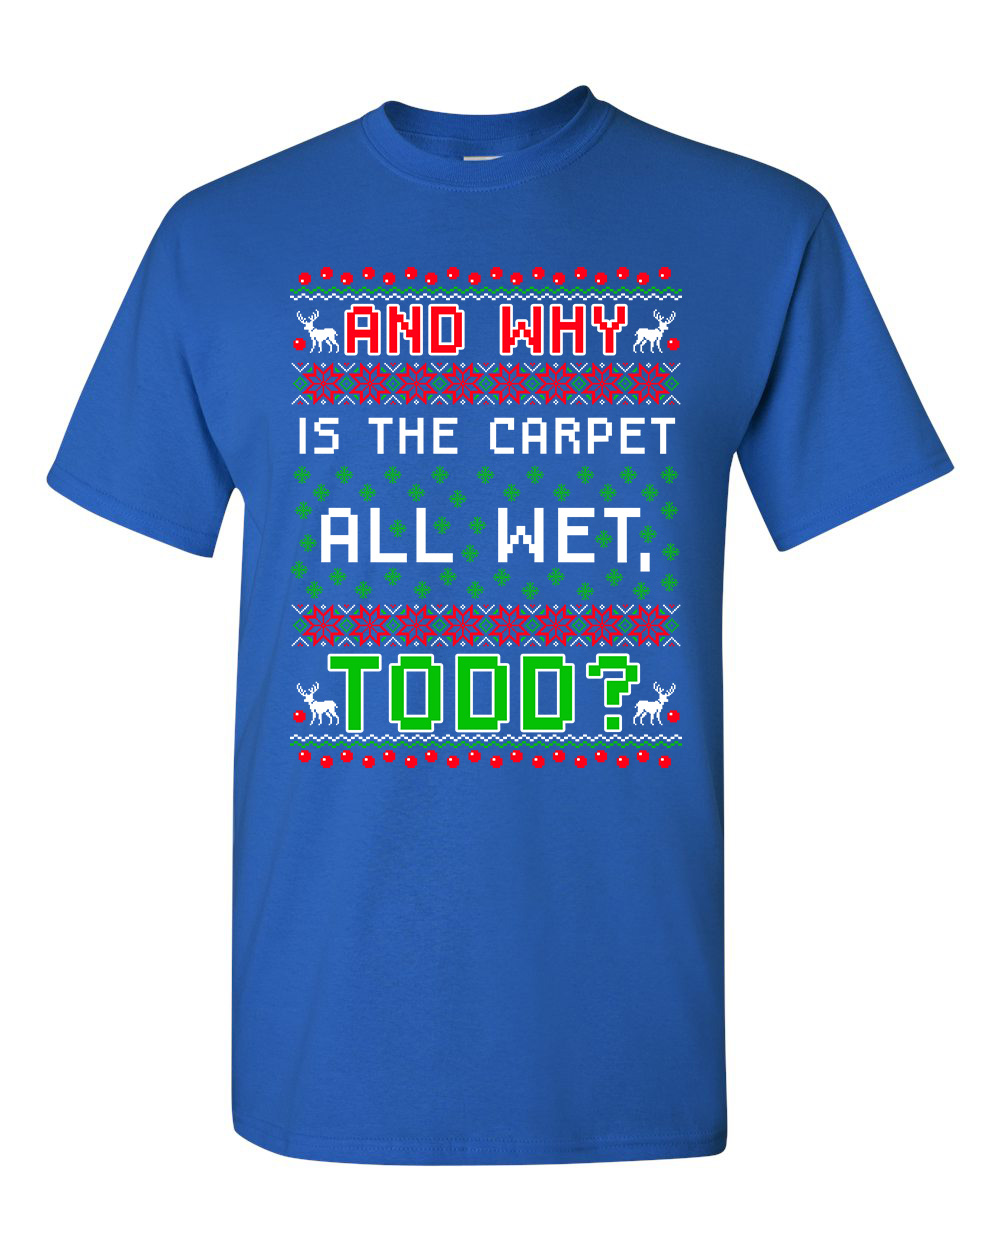 New Todd Vacation Carpet Is Wet Movie Ugly Christmas Funny DT Adult T-Shirt Tee